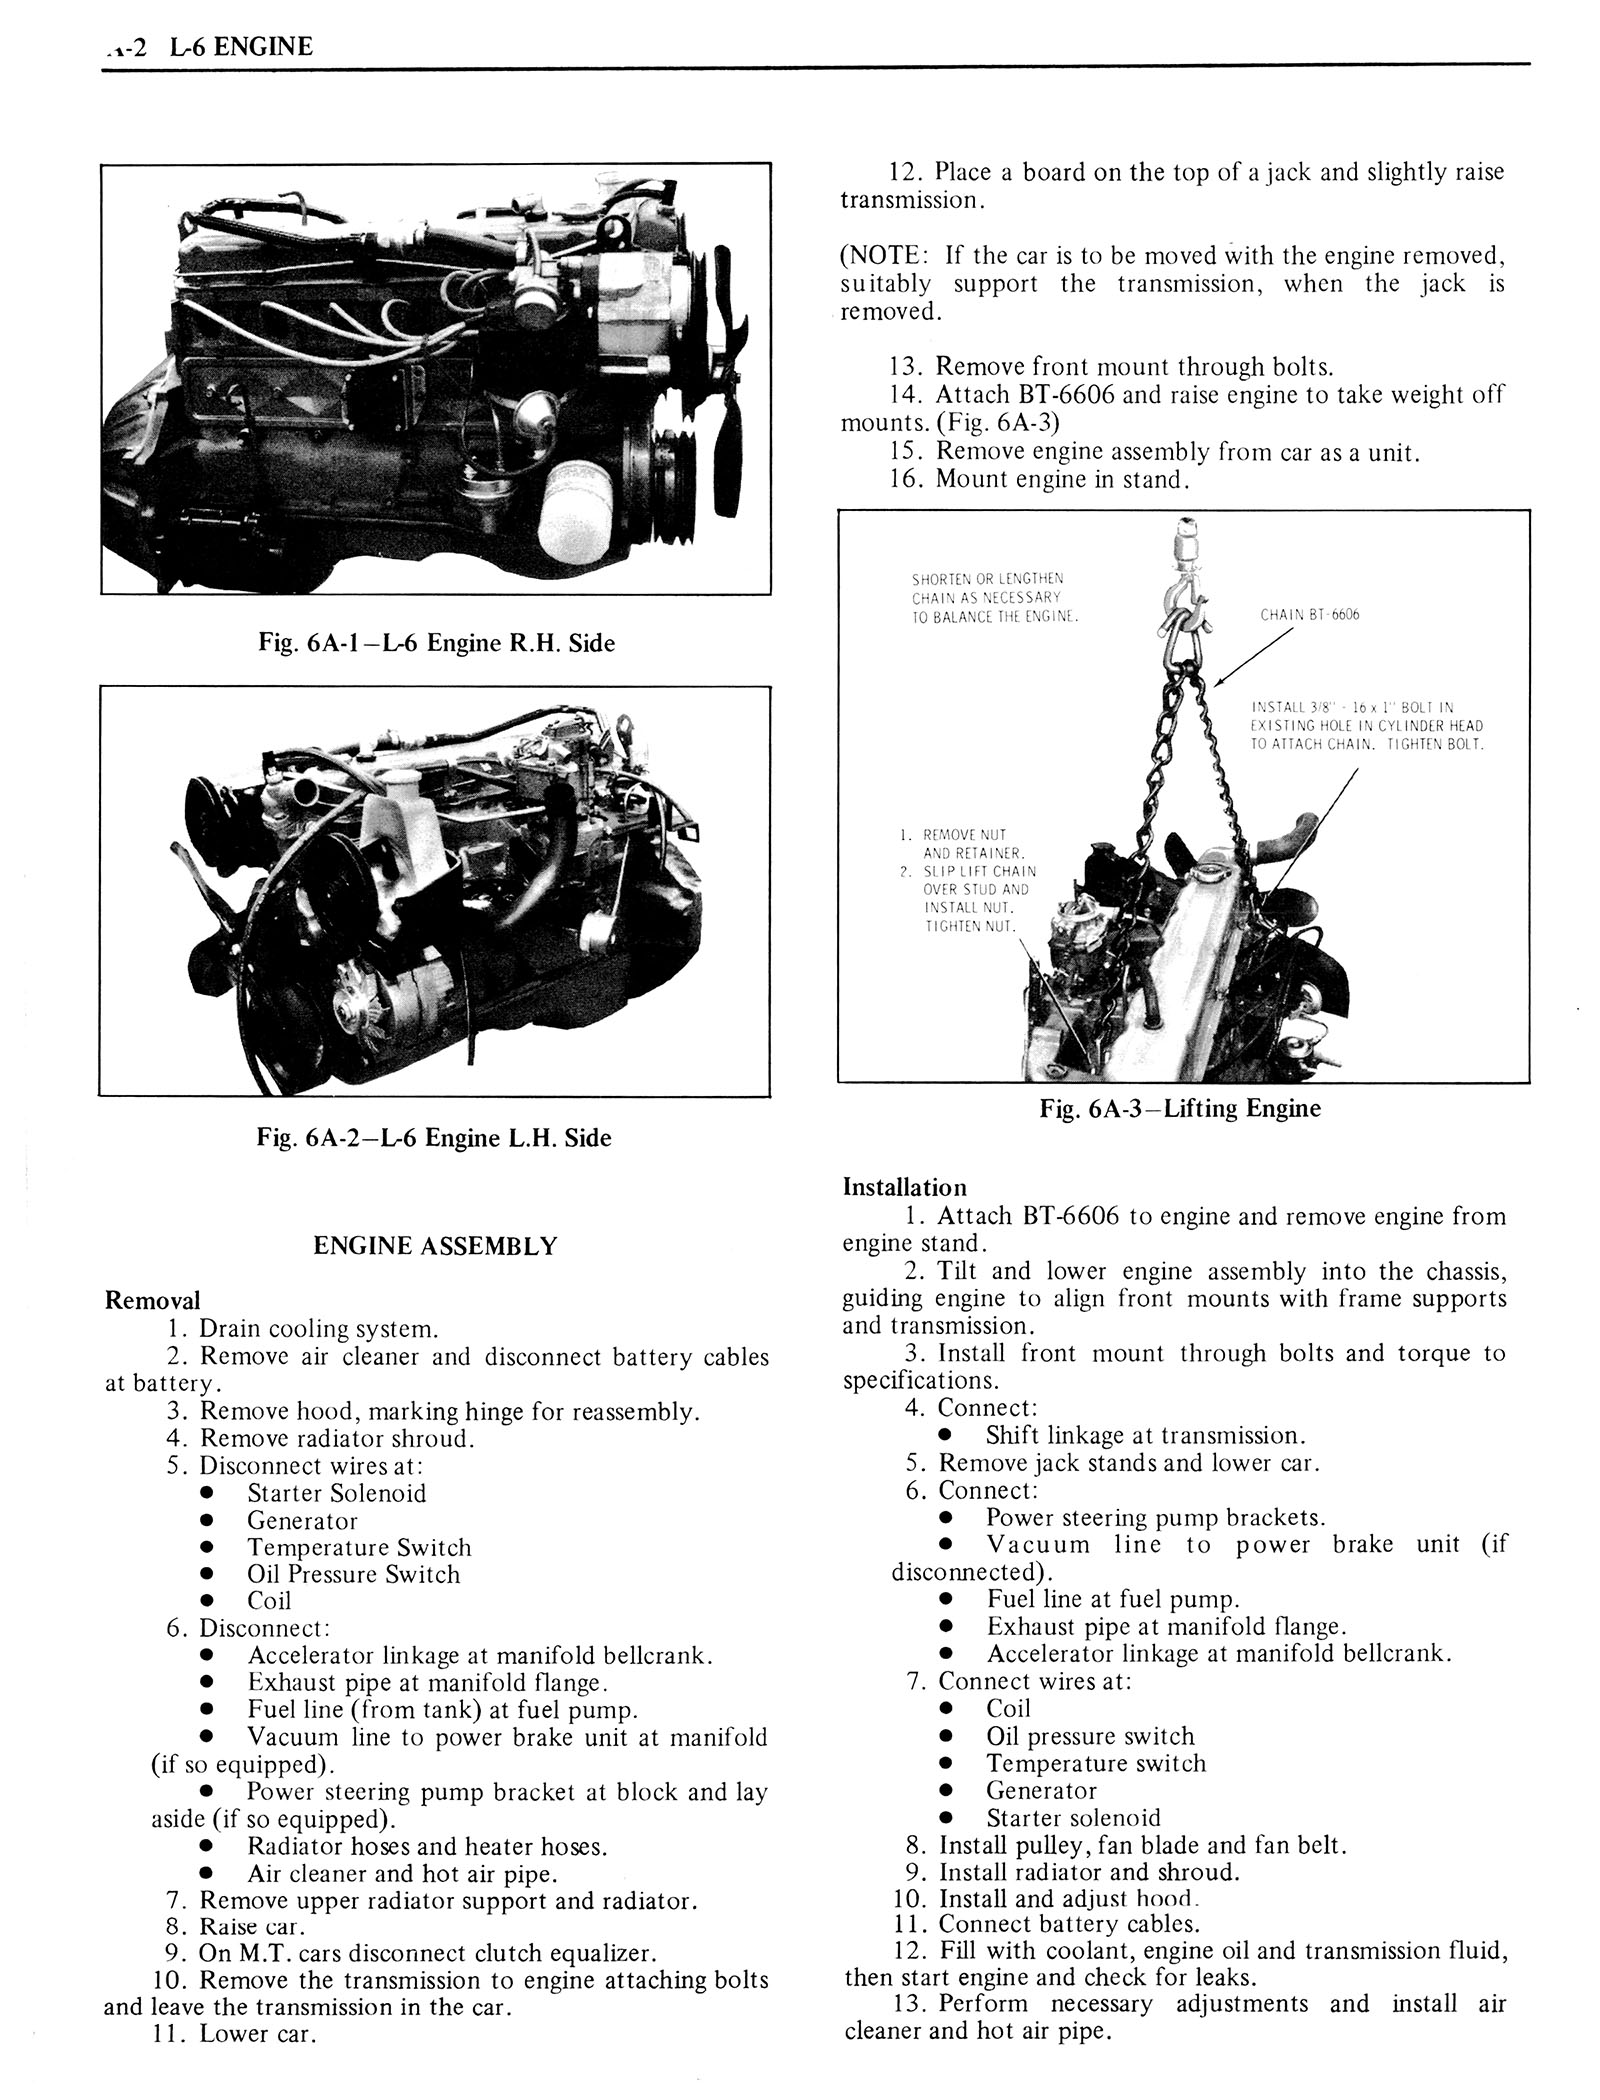 1976 Oldsmobile Service Manual page 399 of 1390